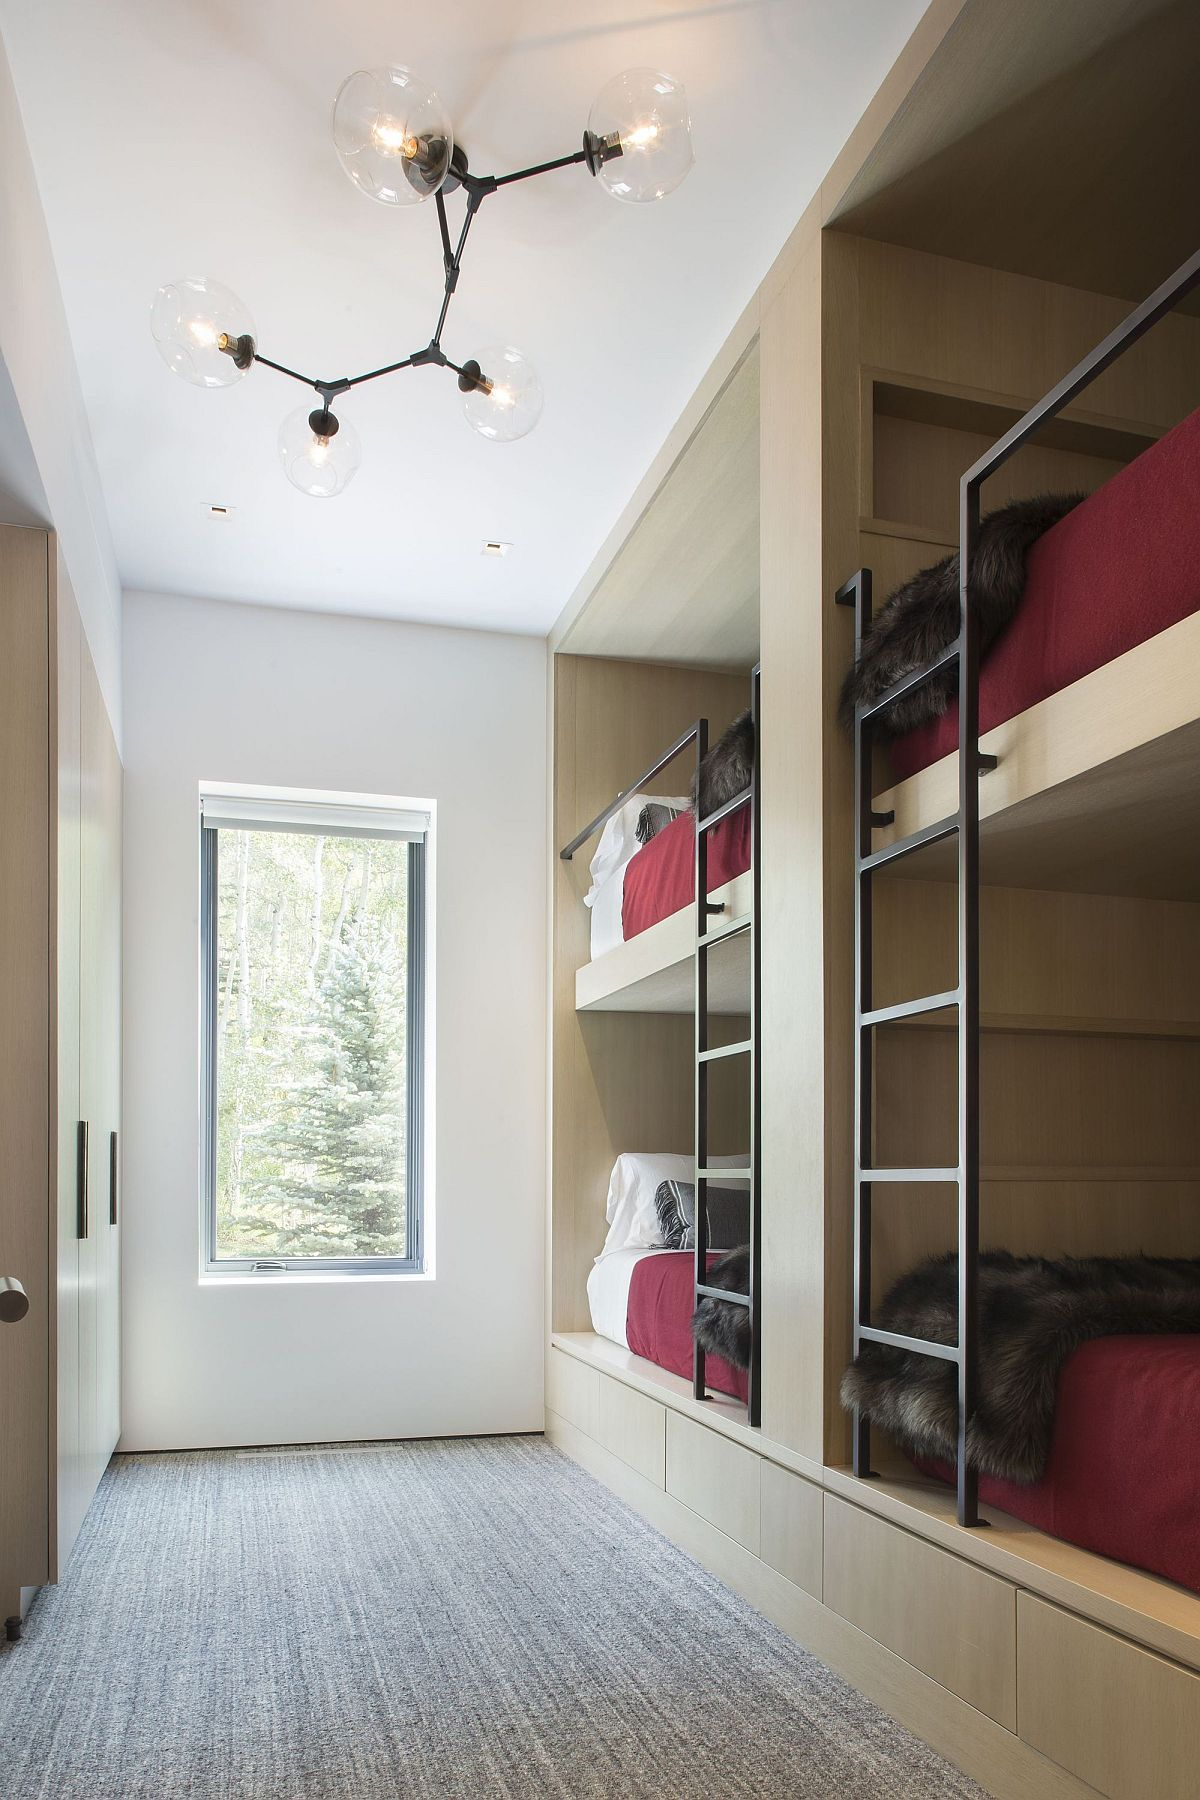 Single-wall Bunk beds for the kids bedroom